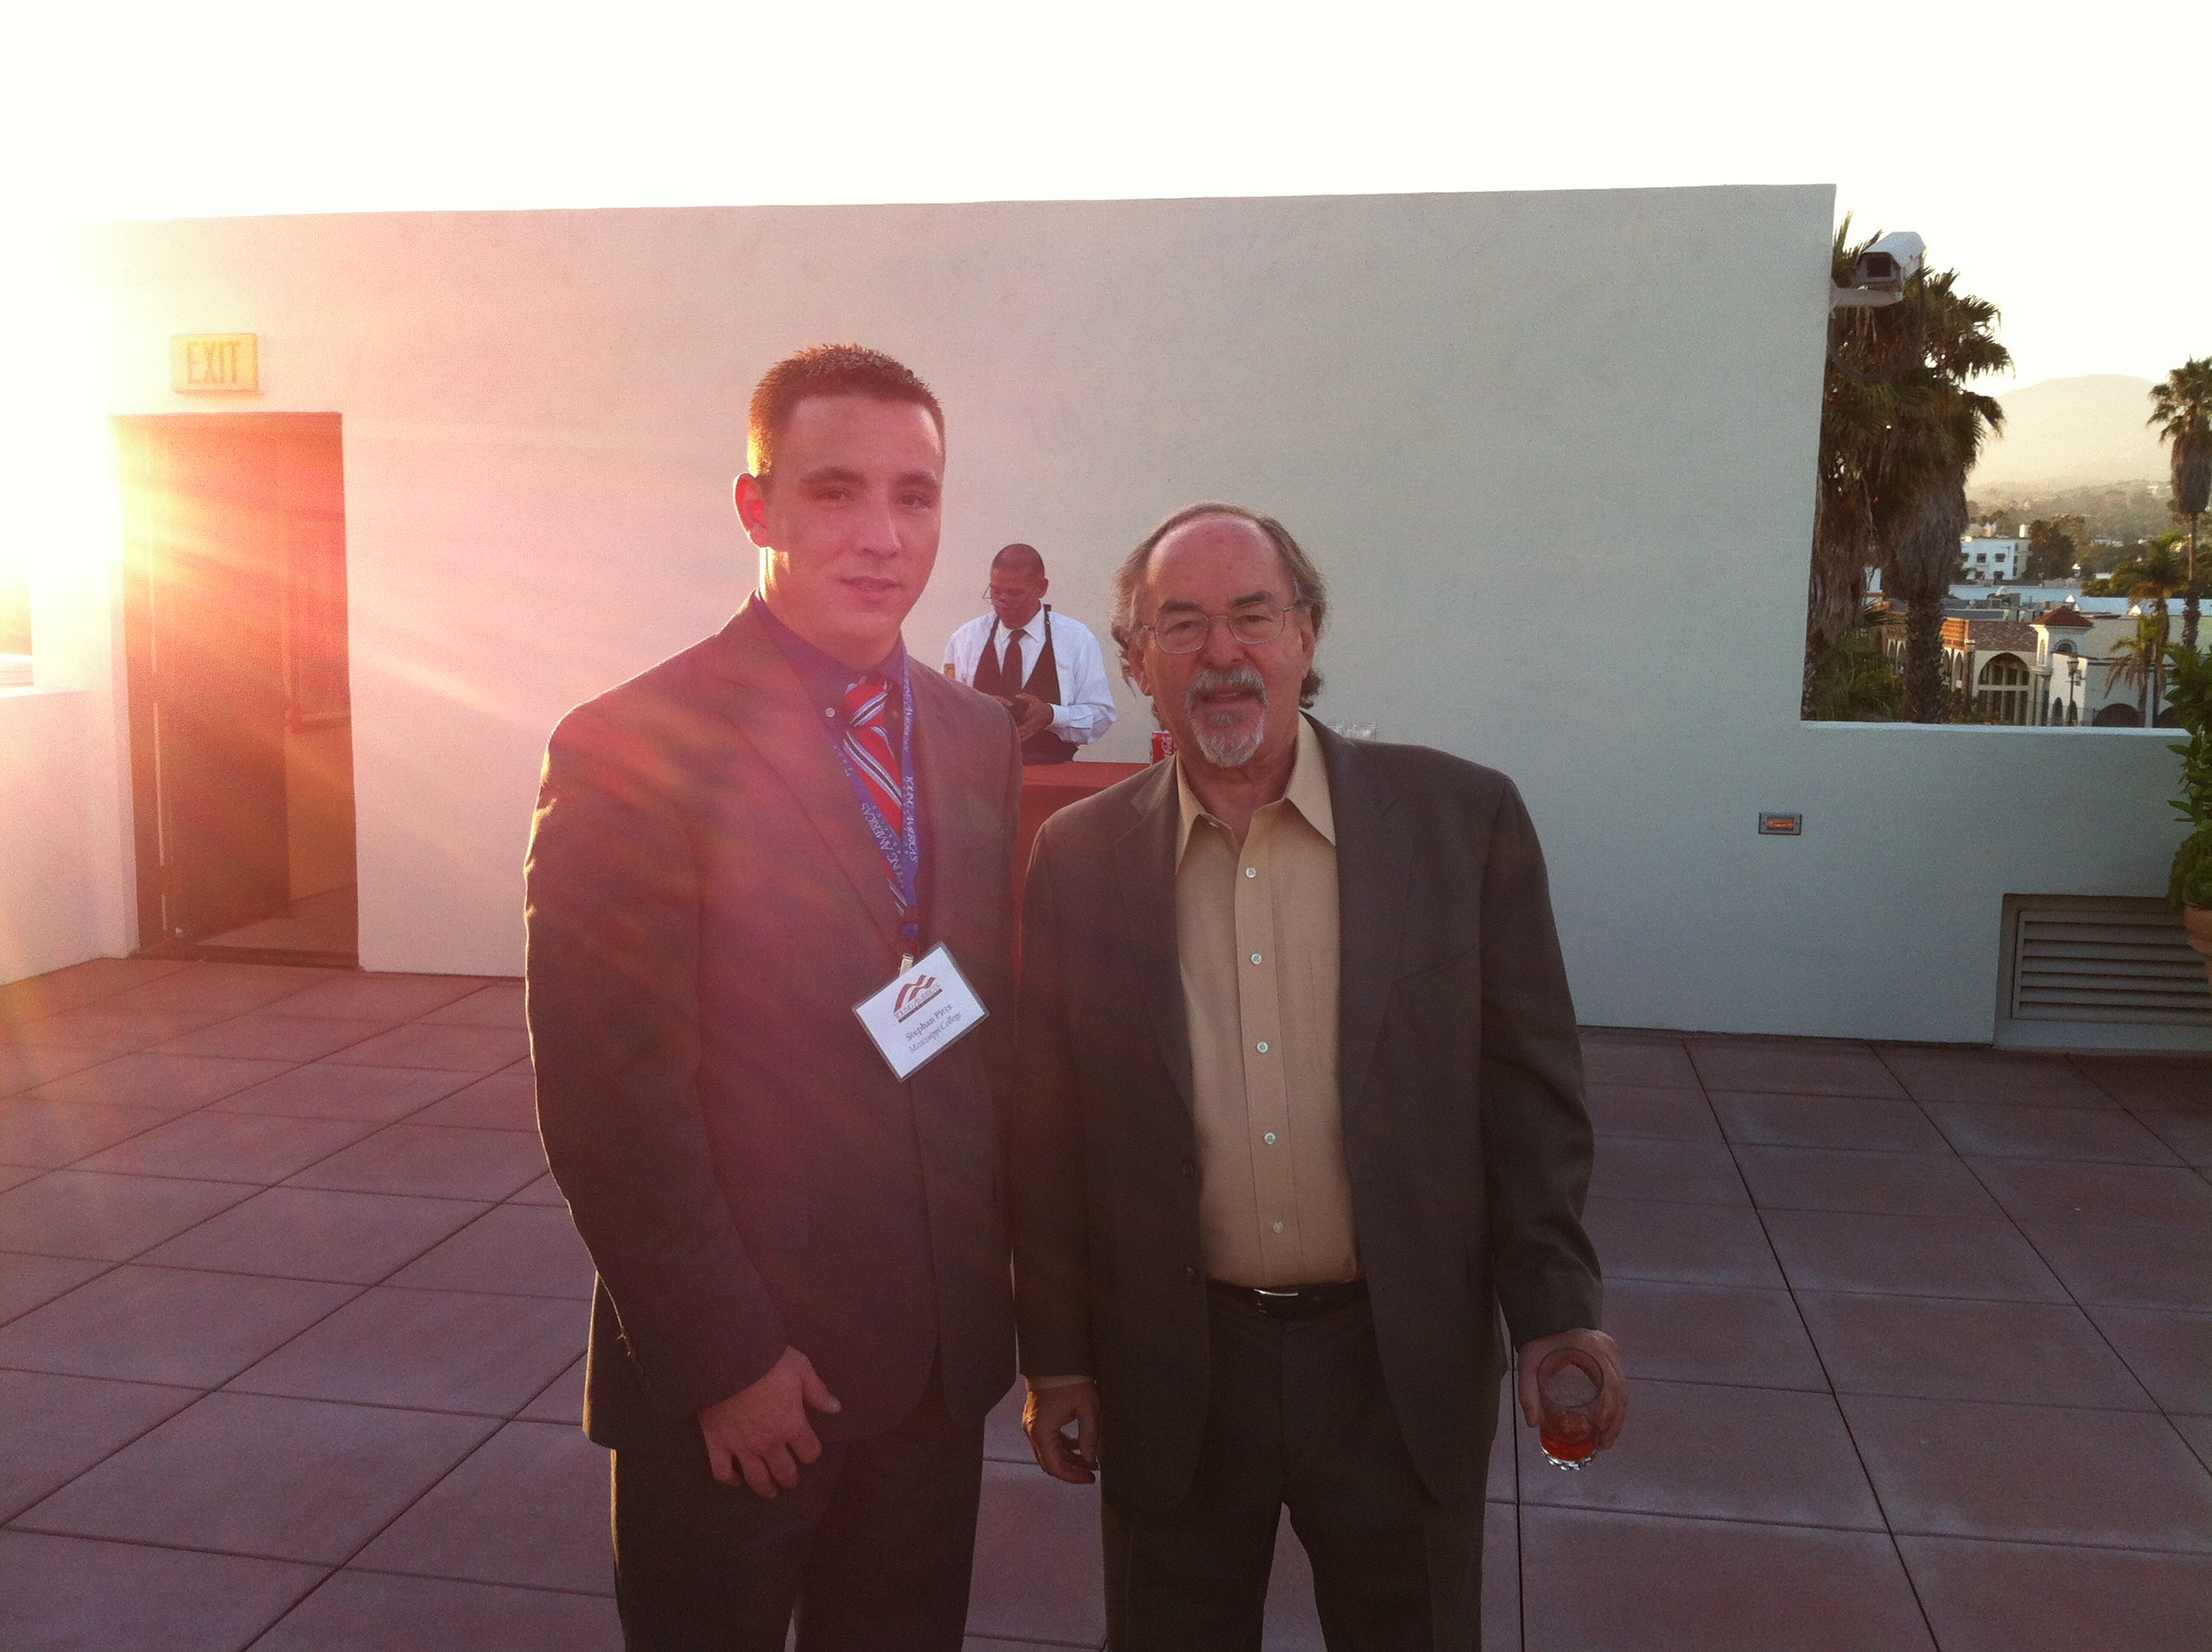 Stephen Pitts meets with David Horowitz